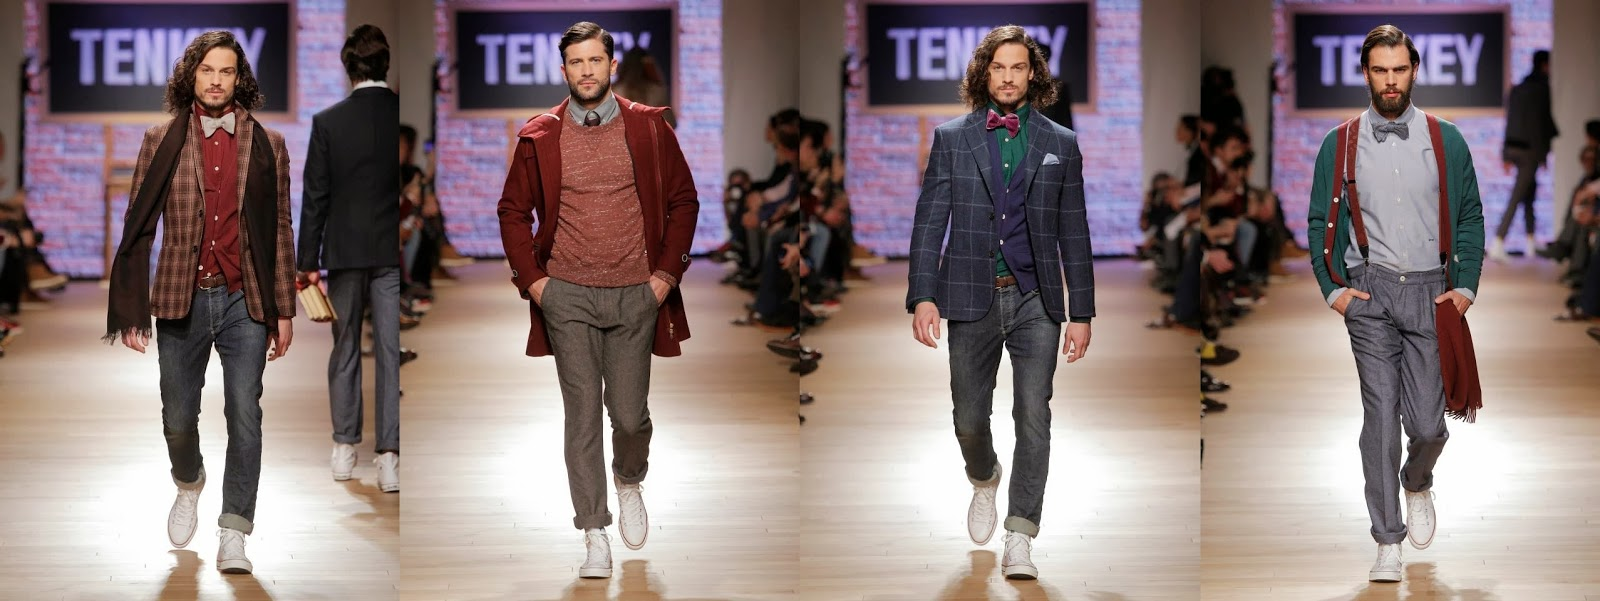 Colección, Fall 2014, Fashion Week, Made in Spain, MFSHOW, Tenkey, menswear, Made in Spain, Suits and Shirts,